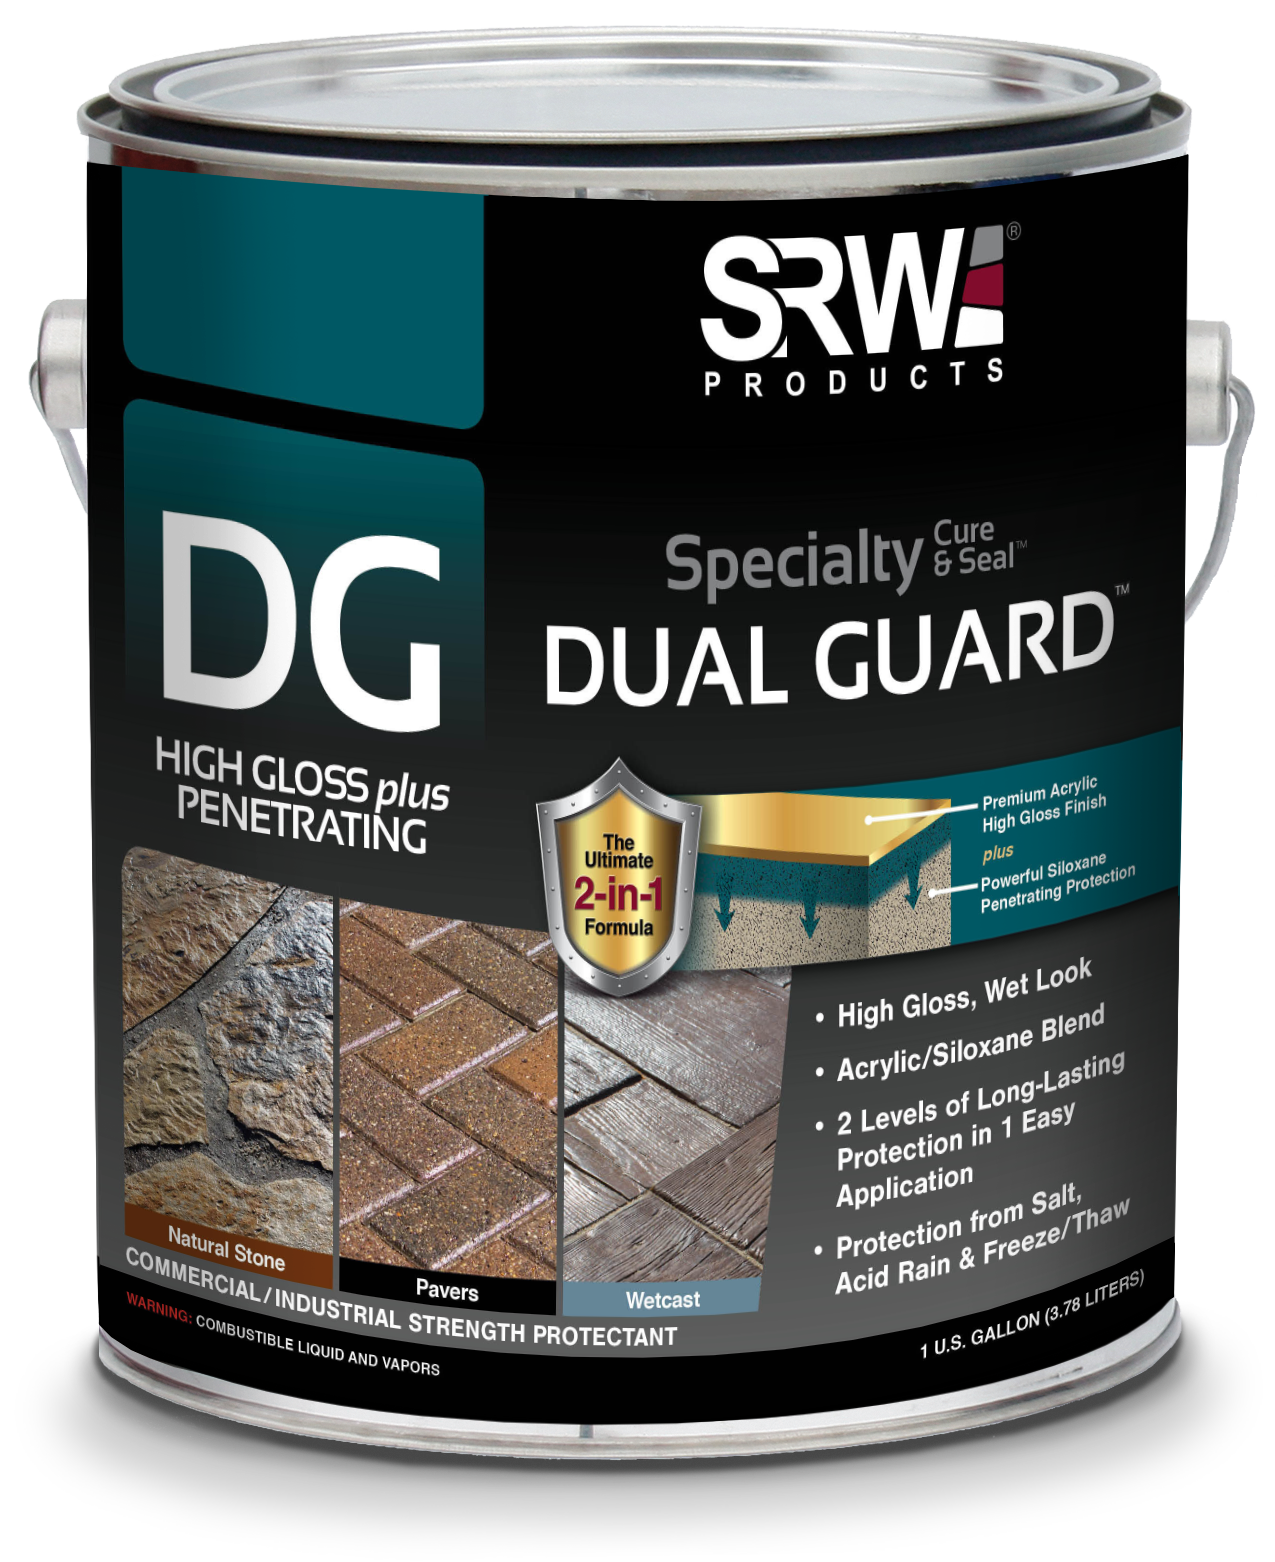 DG Dual Guard Product Package